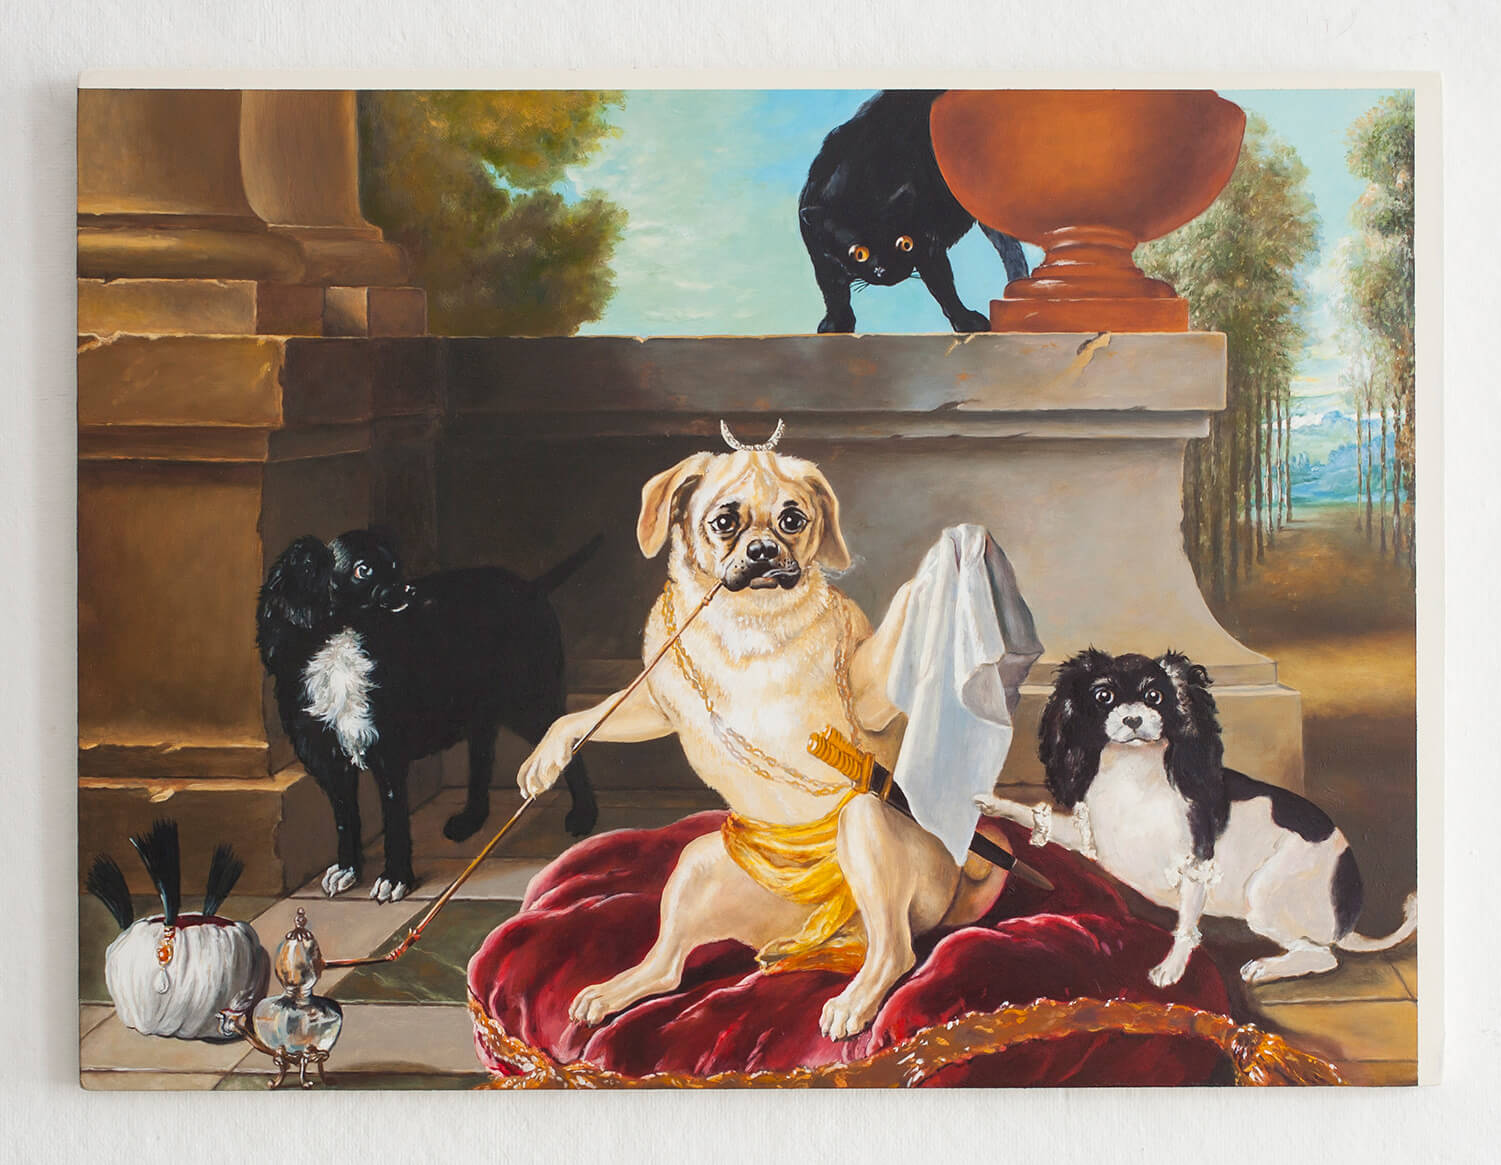 John Gordon Gauld                                         'Harem of the Pug', 2015                                          18 x 24 Inches                                          oil on honeycomb aluminum panel